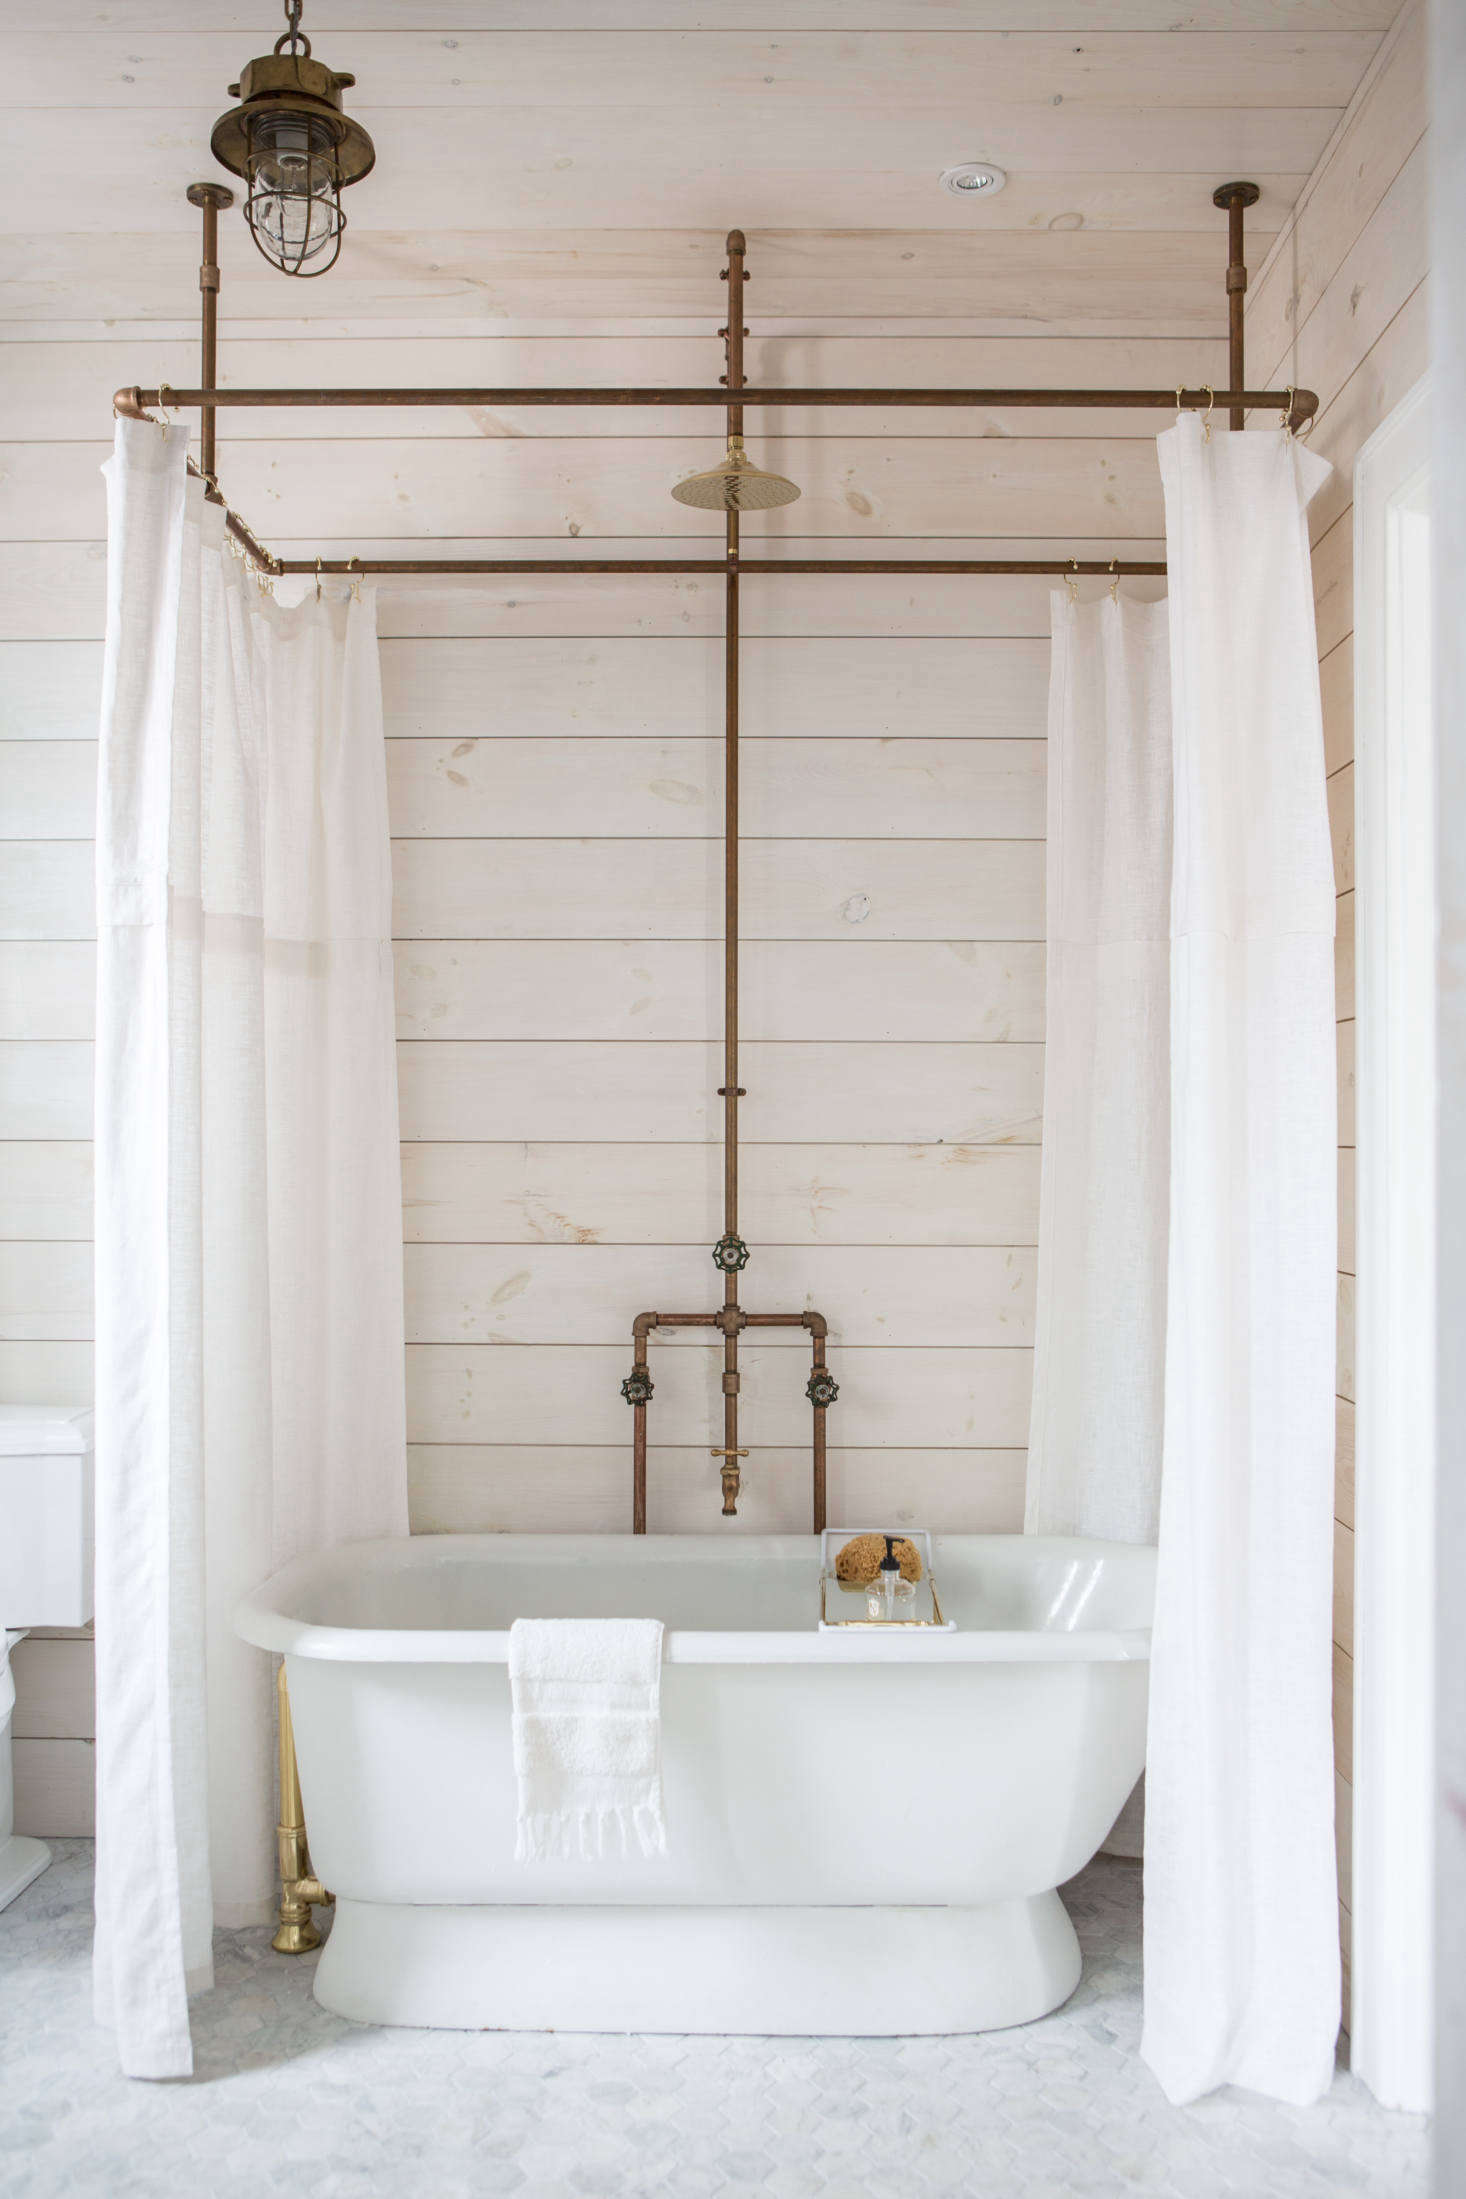 A Diy Shower Curtain Hoop Made From Brass Pipes By Zio Sons